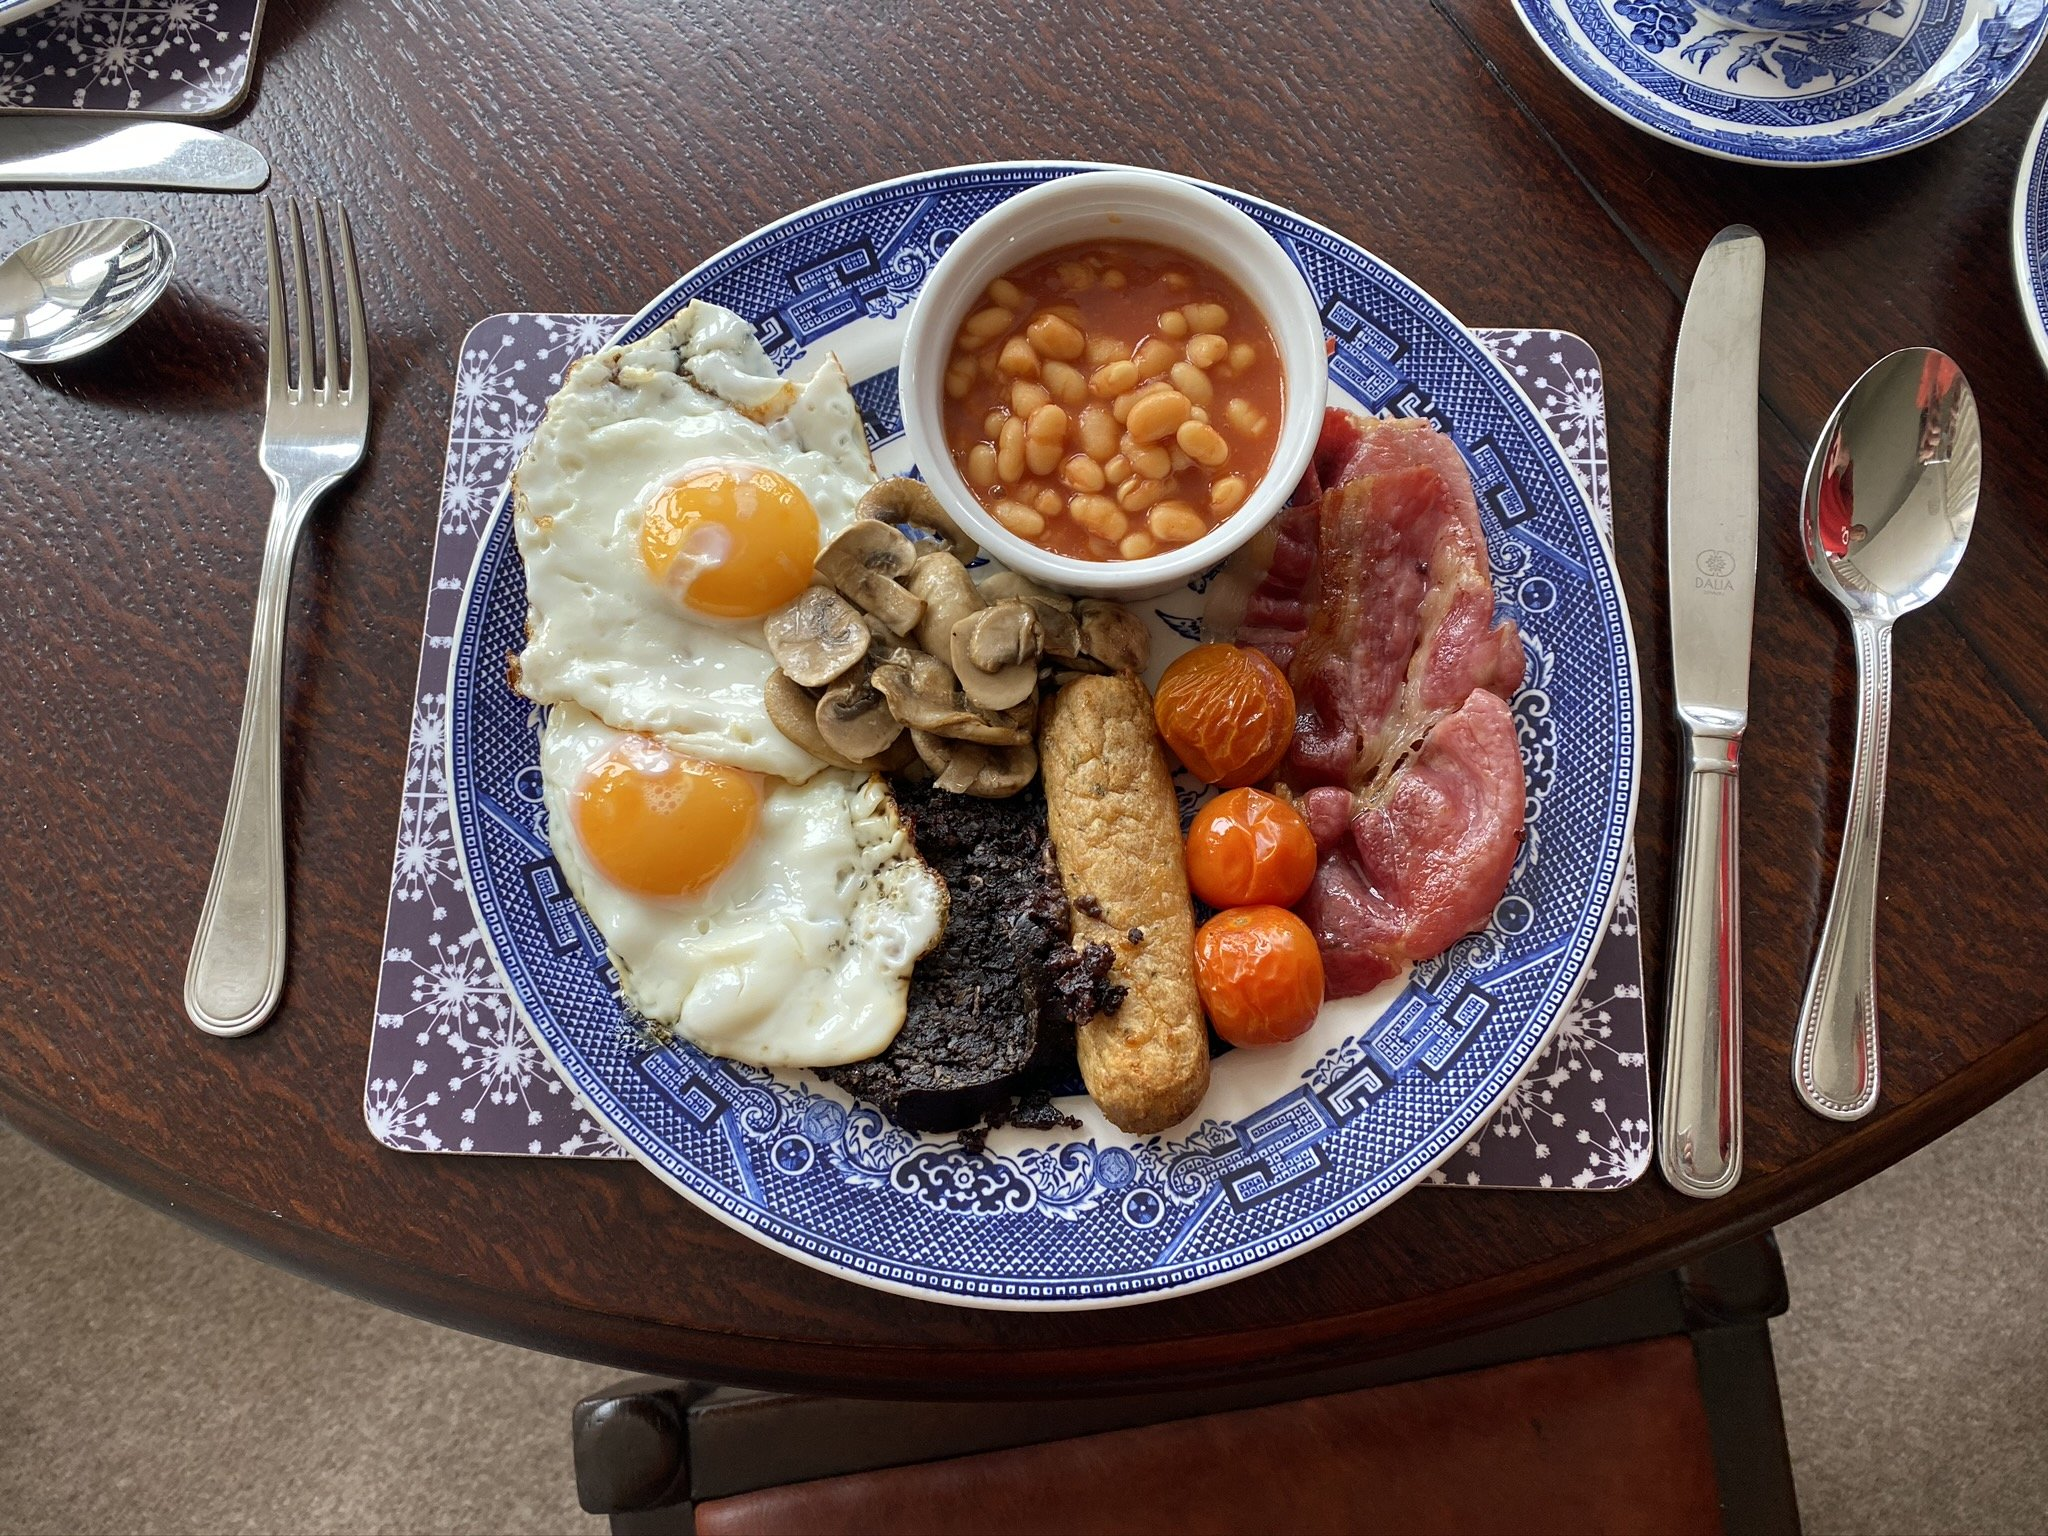 A cooked breakfast of bacon, sausage, muschroom, Skye black pudding, fried egg and baked beans. One of the breakfast options at Millburn Bed and Breakfast